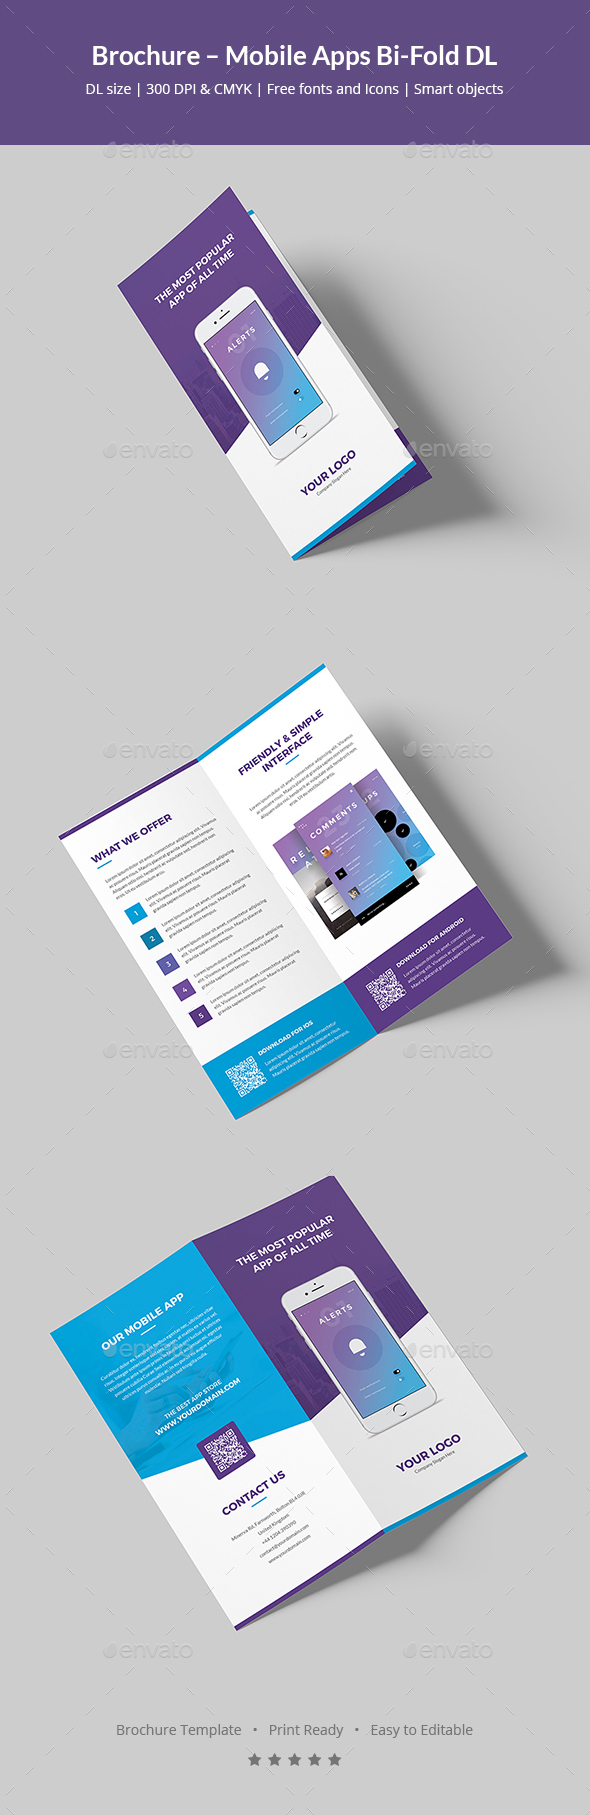 Brochure mobile apps bi fold dl by artbart graphicriver for Free bi fold brochure template 2